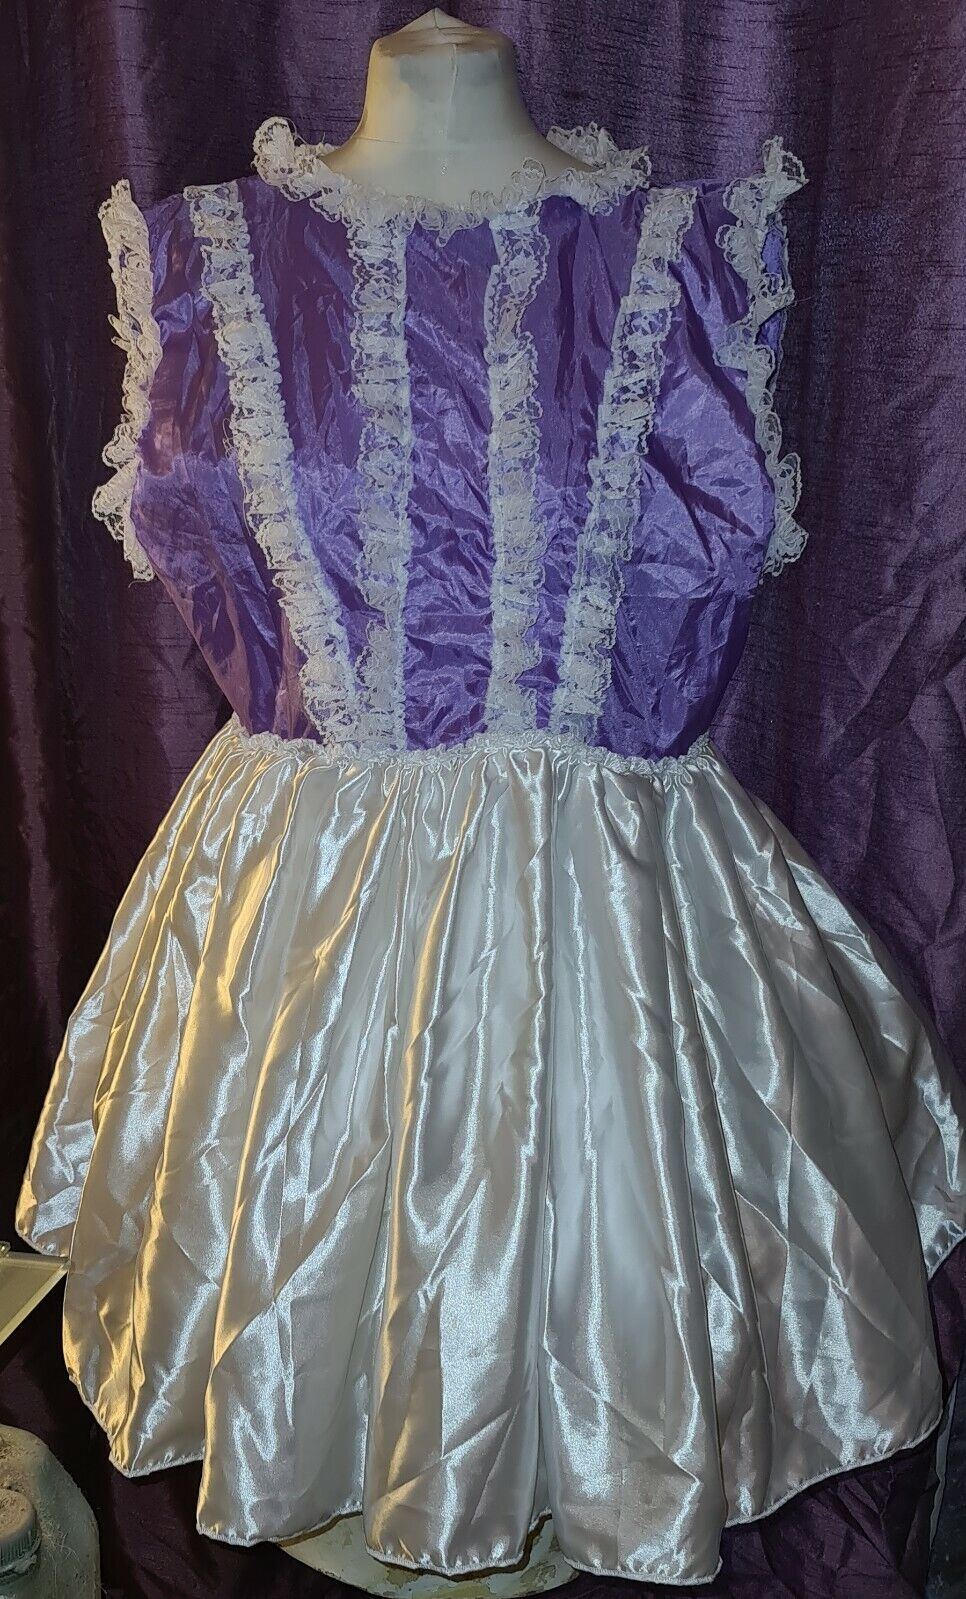 New purple +white satin frilly dress sissy maid cosplay baby style party quality